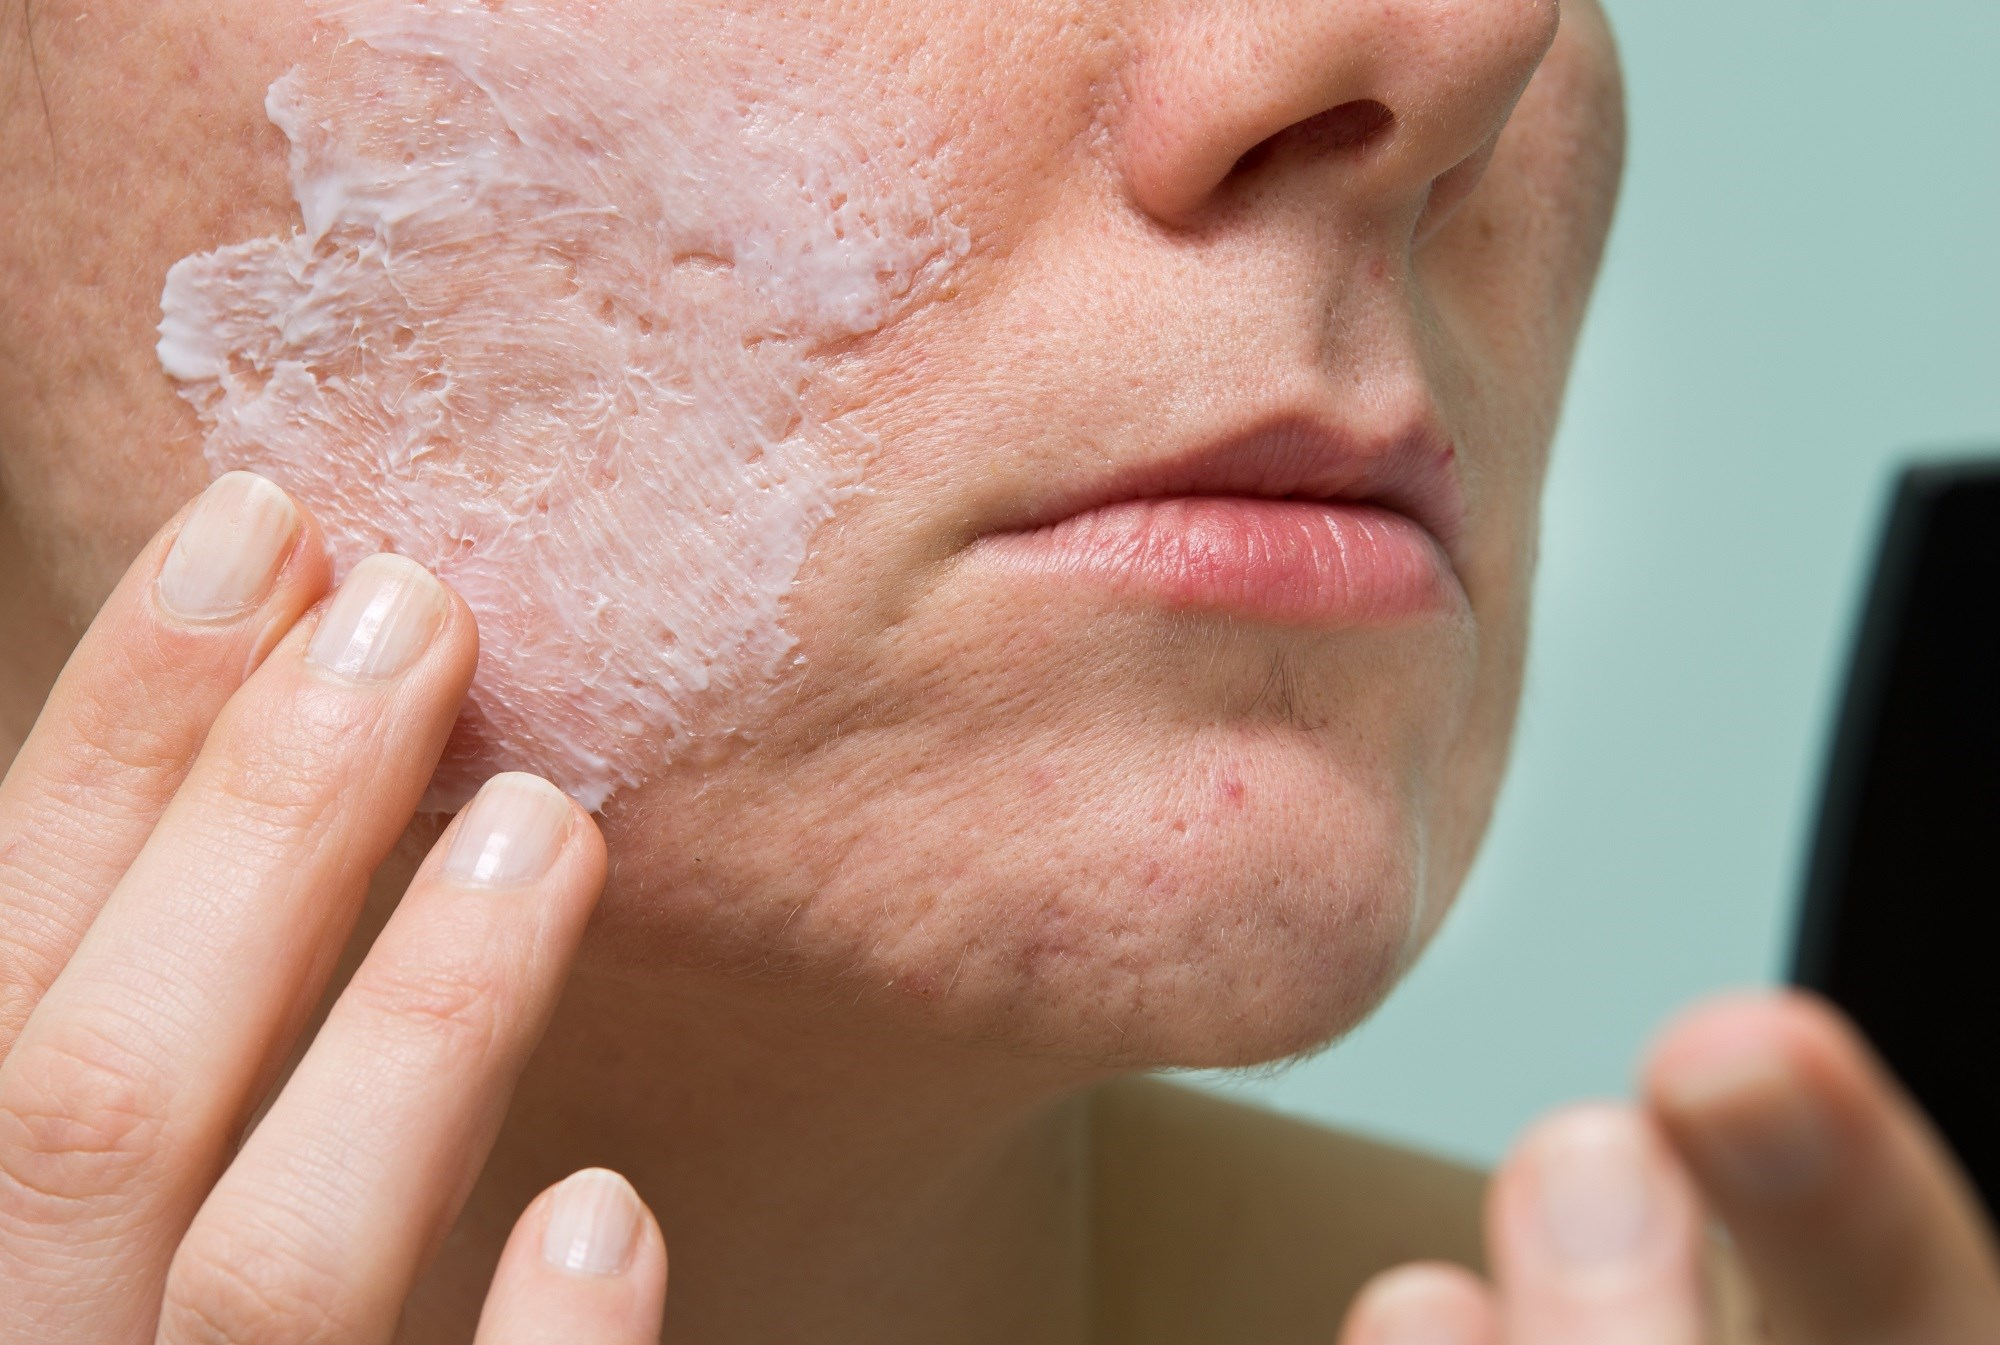 Tretinoin 0.05 percent lotion provides statistically significant improvement in patients with moderate-to-severe acne, compared to placebo.